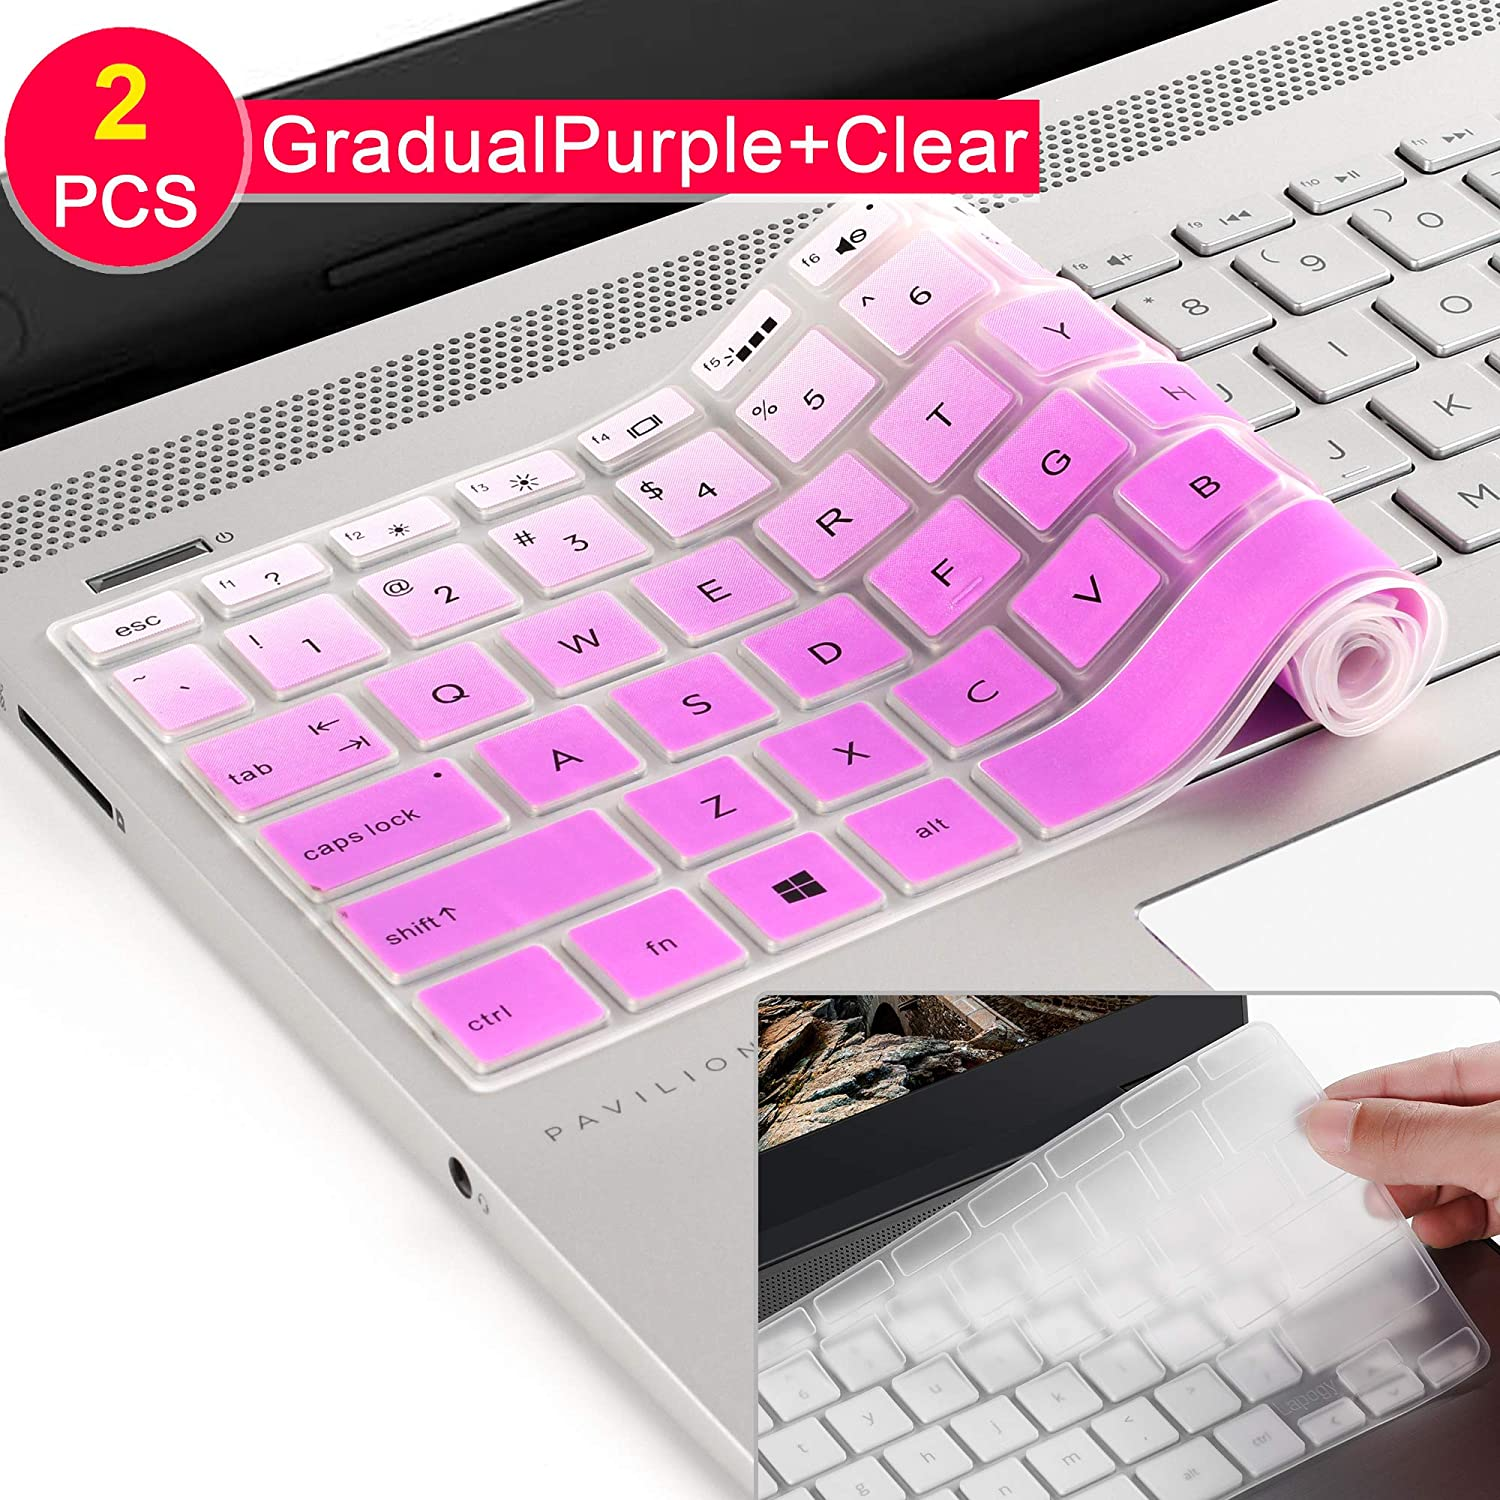 "HP Pavilion X360 14M Keyboard Cover Ultra Thin Anti Dust Silicon Skin Protector for HP Pavilion X360 14M-BA011DX 14M-BA013DX 14M-BA015DX 14M-BA114DX 14"" Touchscreen Laptop US Layout(Gradualpurple)"